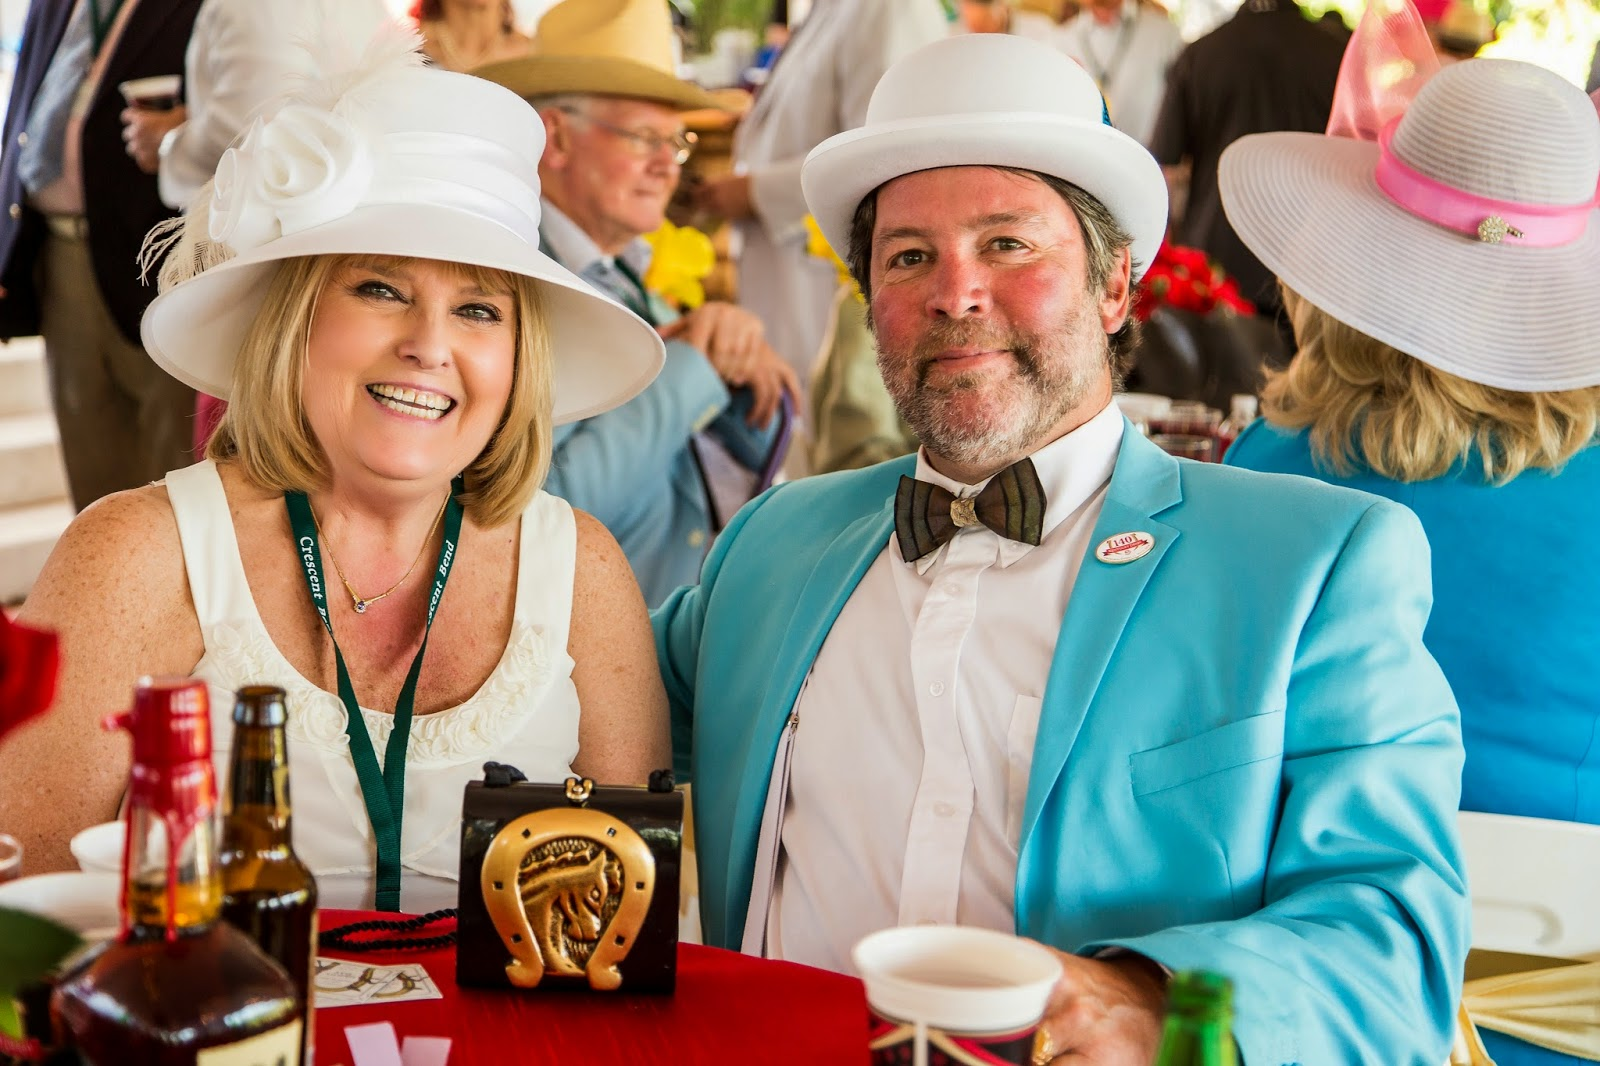 Crescent Bend Derby Day, Knoxville, ALM Photo, Kentucky Derby